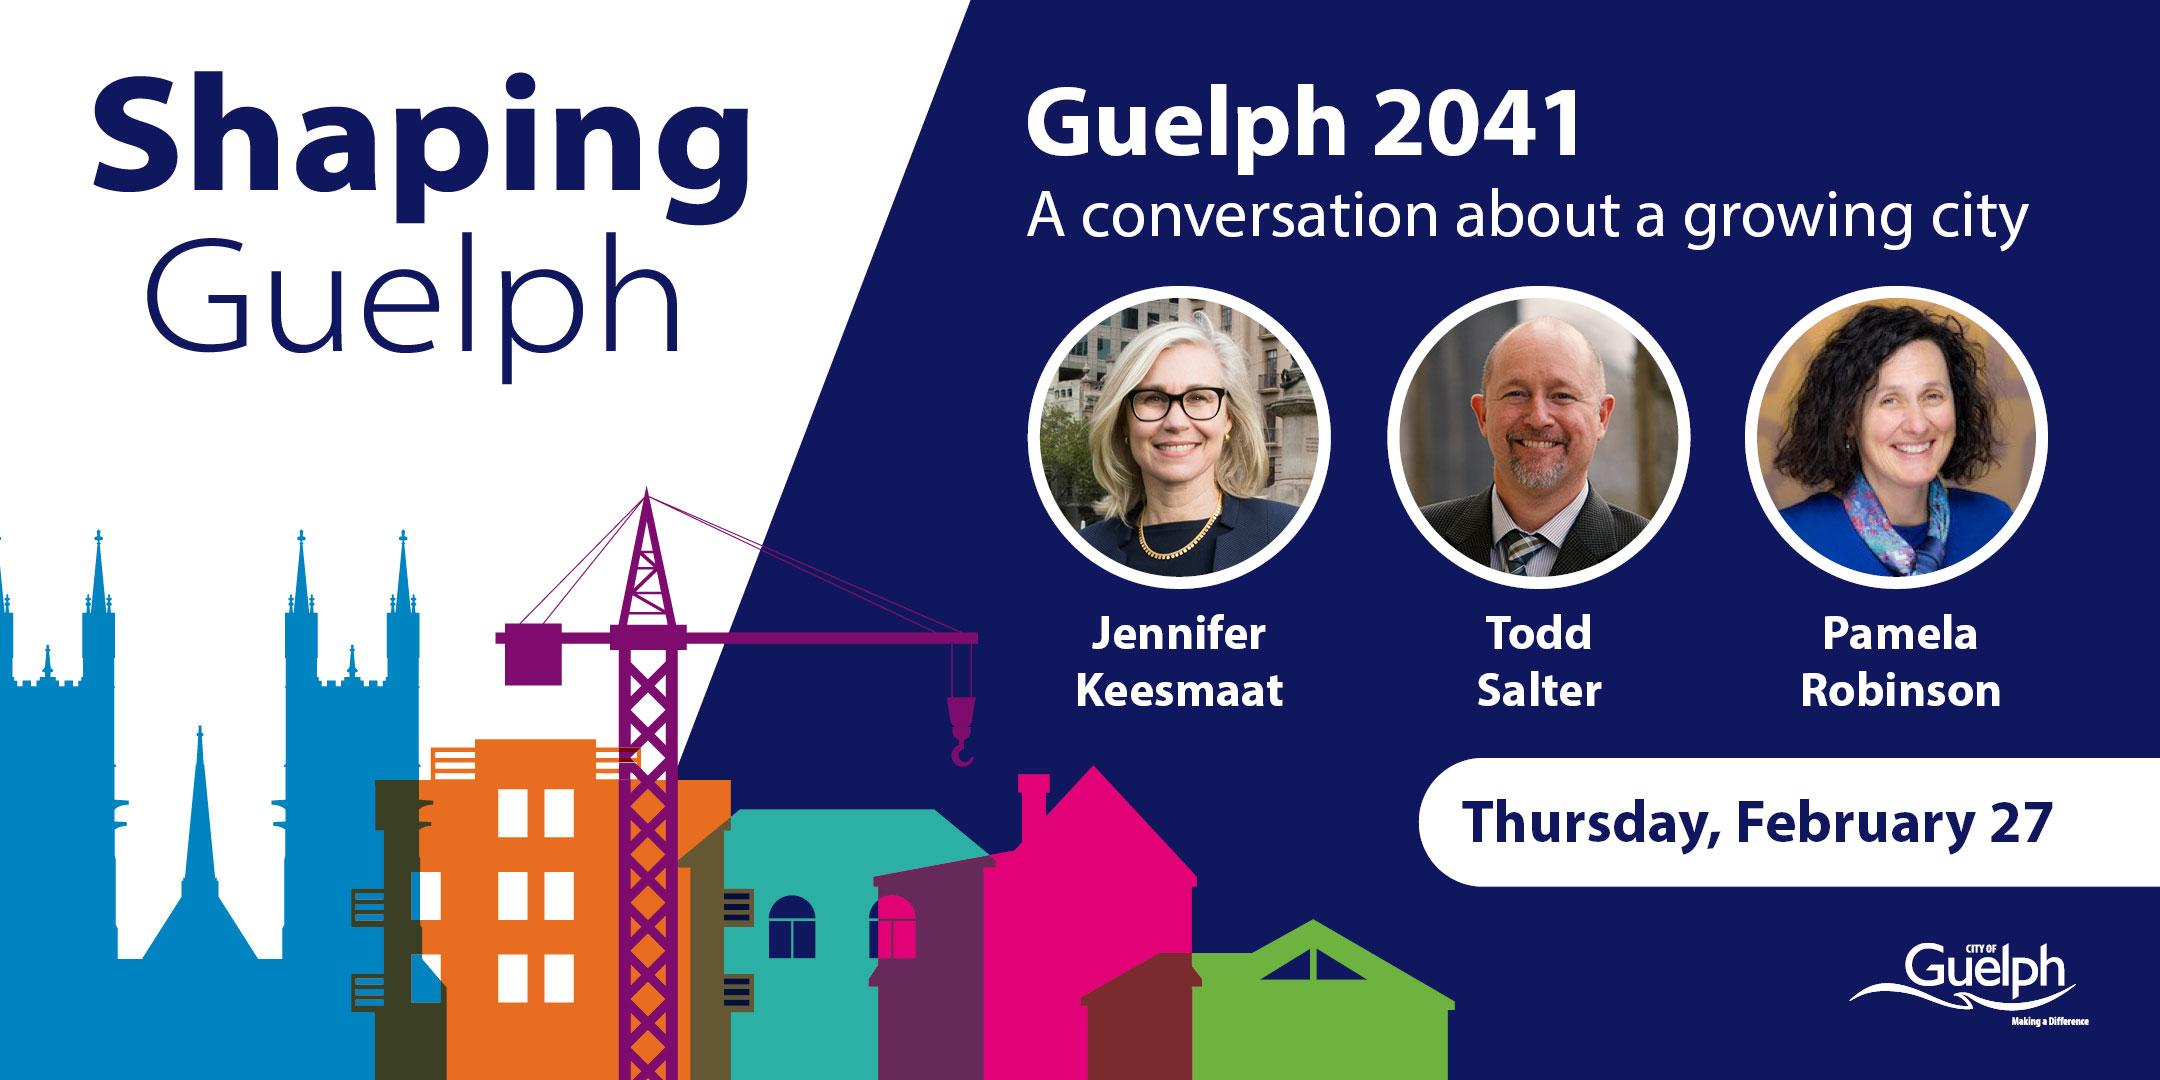 Guelph 2041: A conversation about a growing city